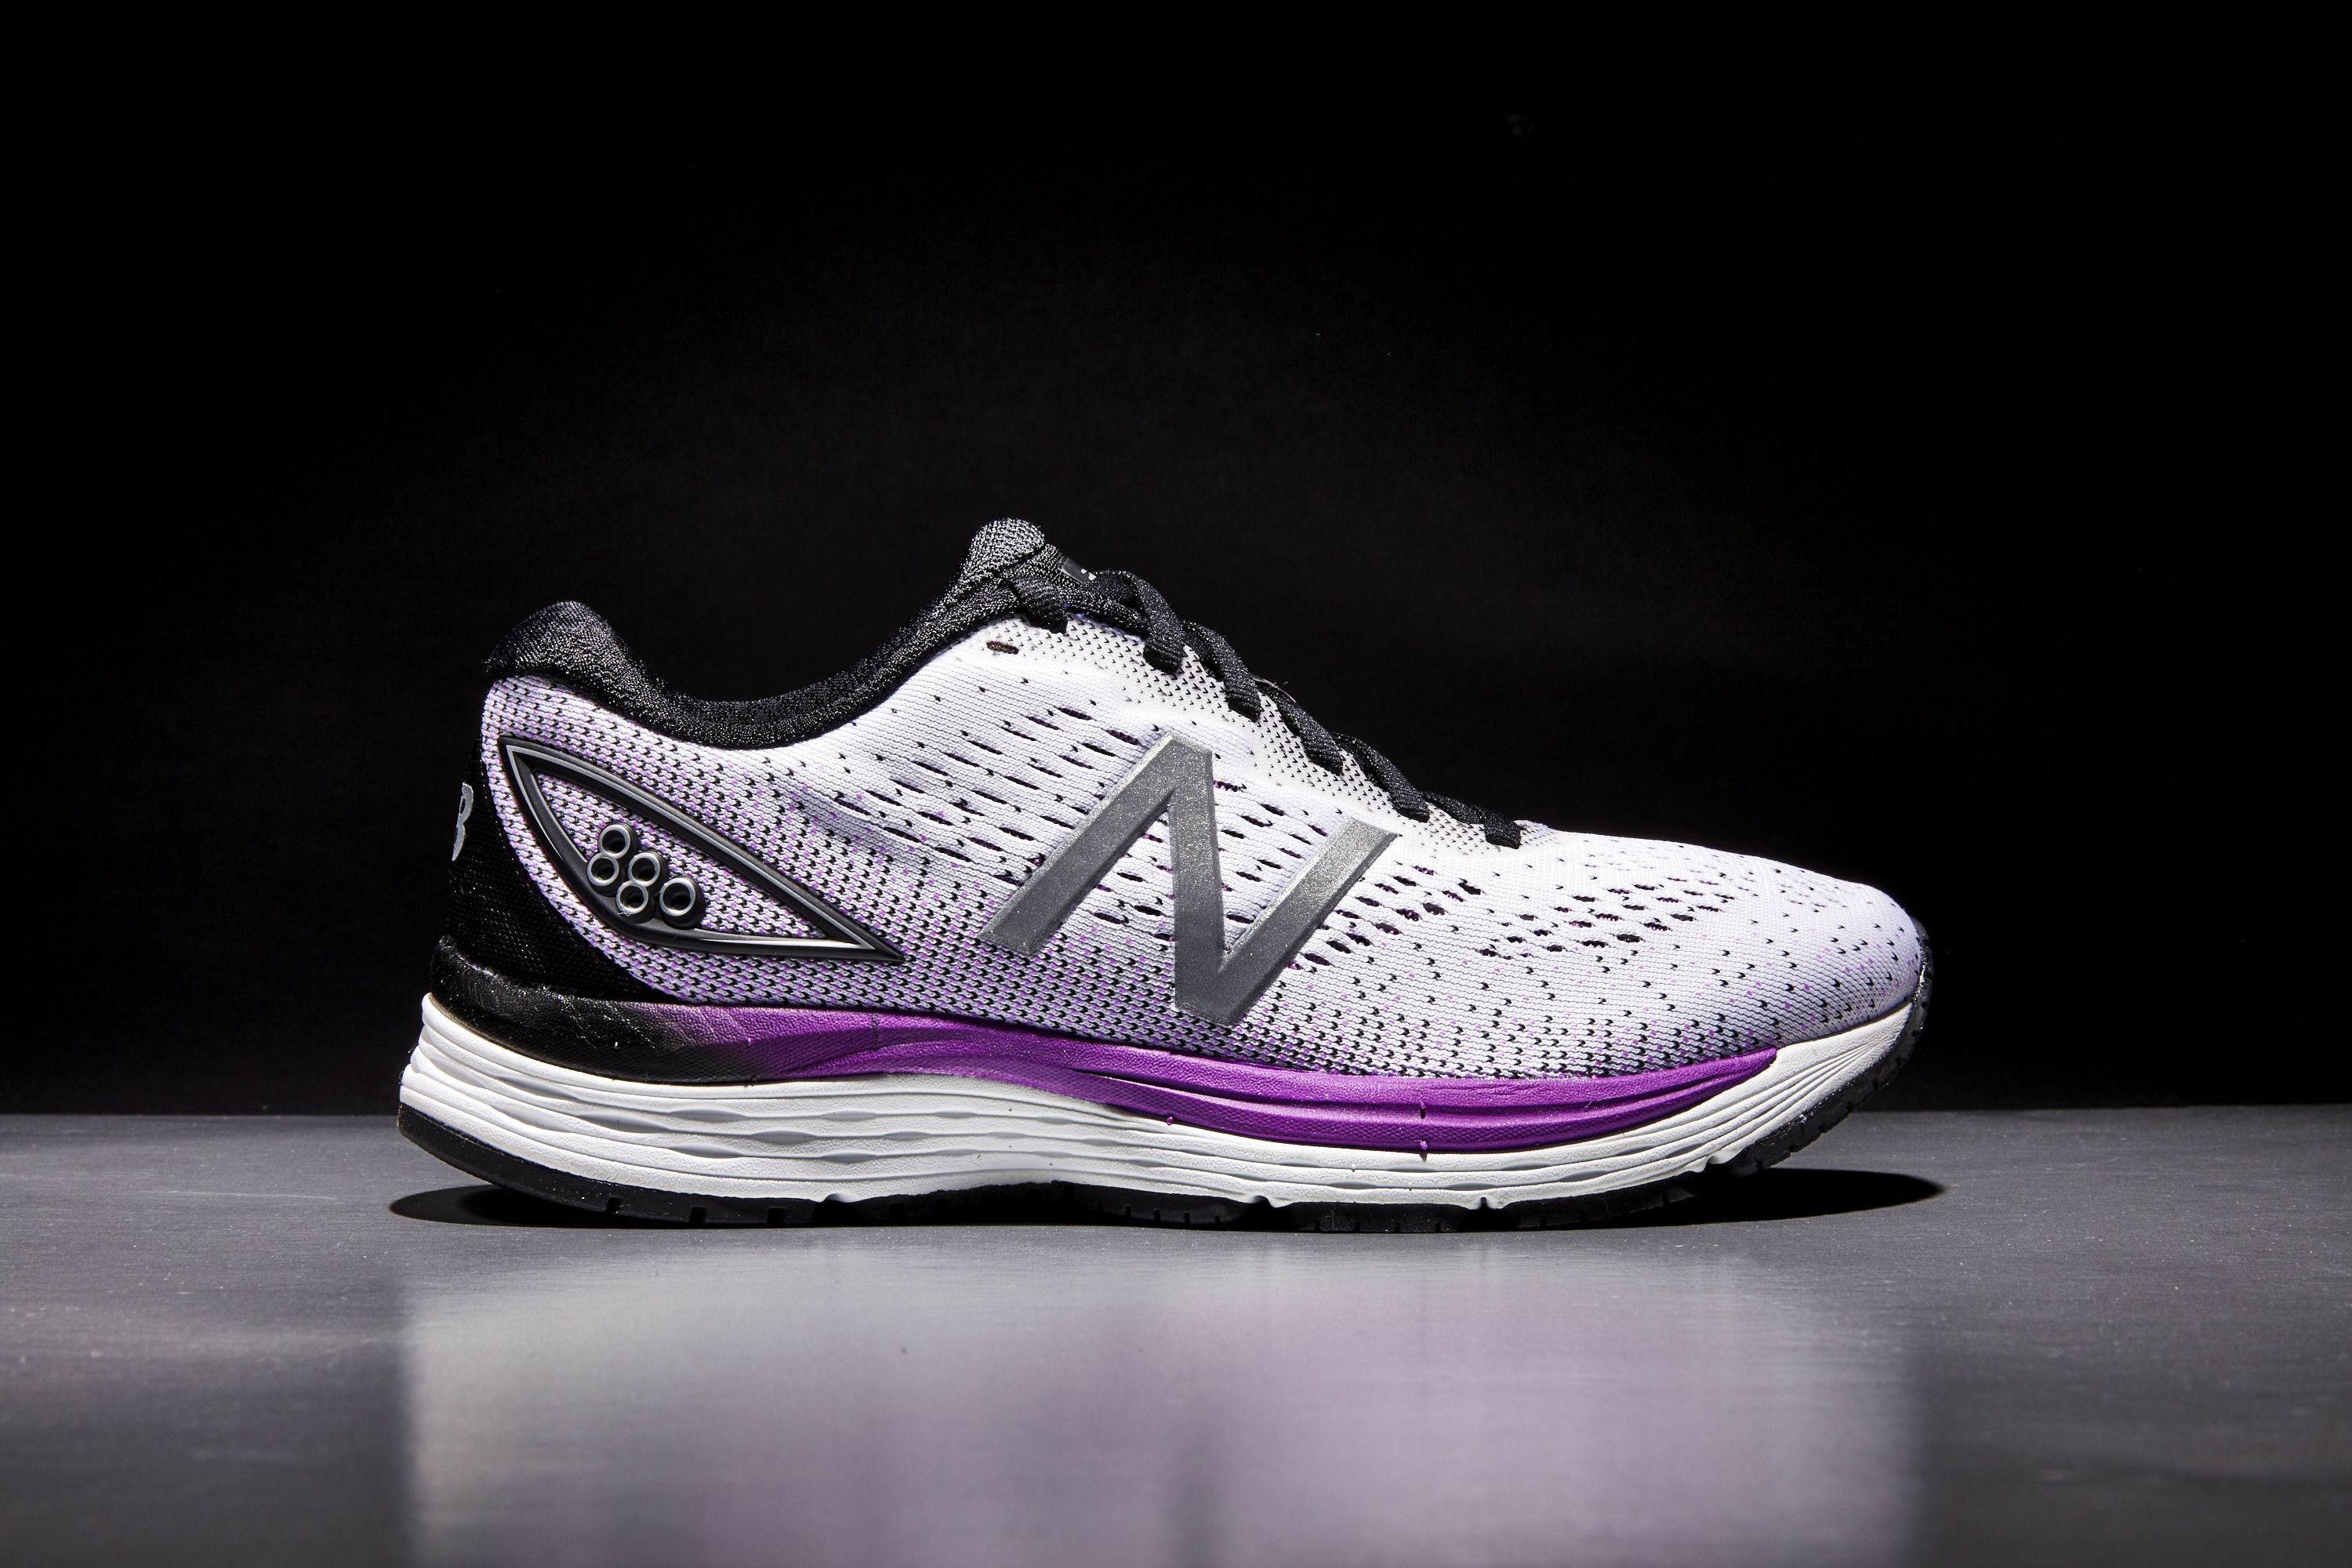 new style 71ffe a4aa1 Best New Balance Running Shoes   New Balance Shoe Reviews 2019